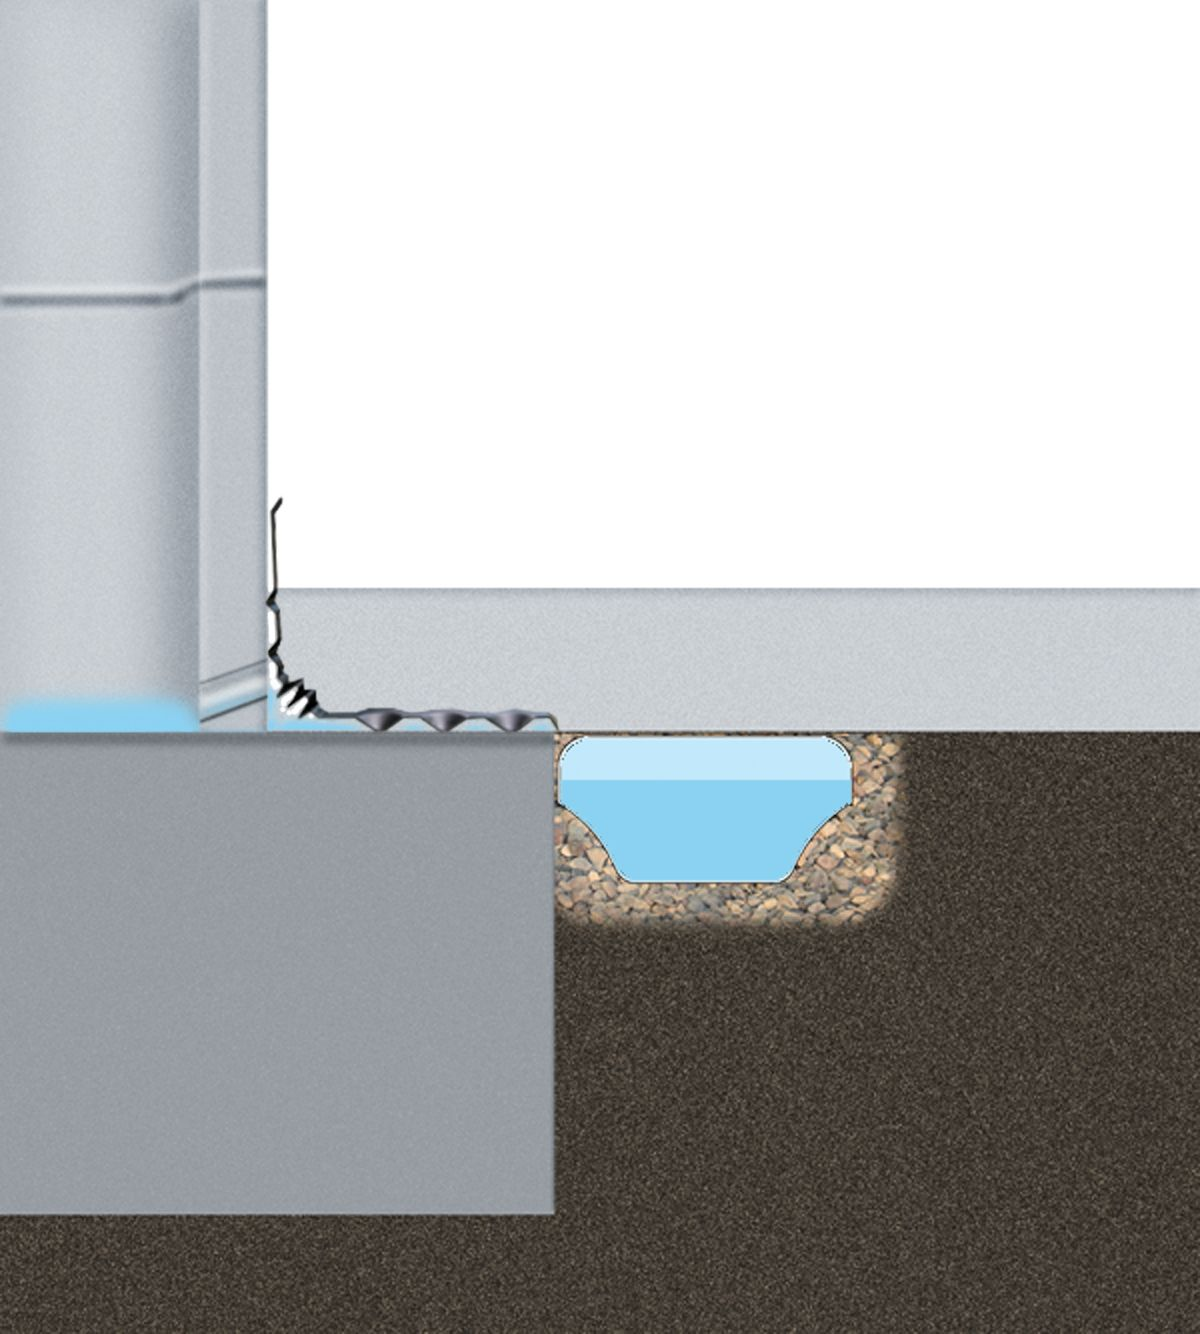 Fast Track Basement Waterproofing Hybrid System Waterproof Com Waterproofing Basement Basement Systems Basement Waterproofing Diy